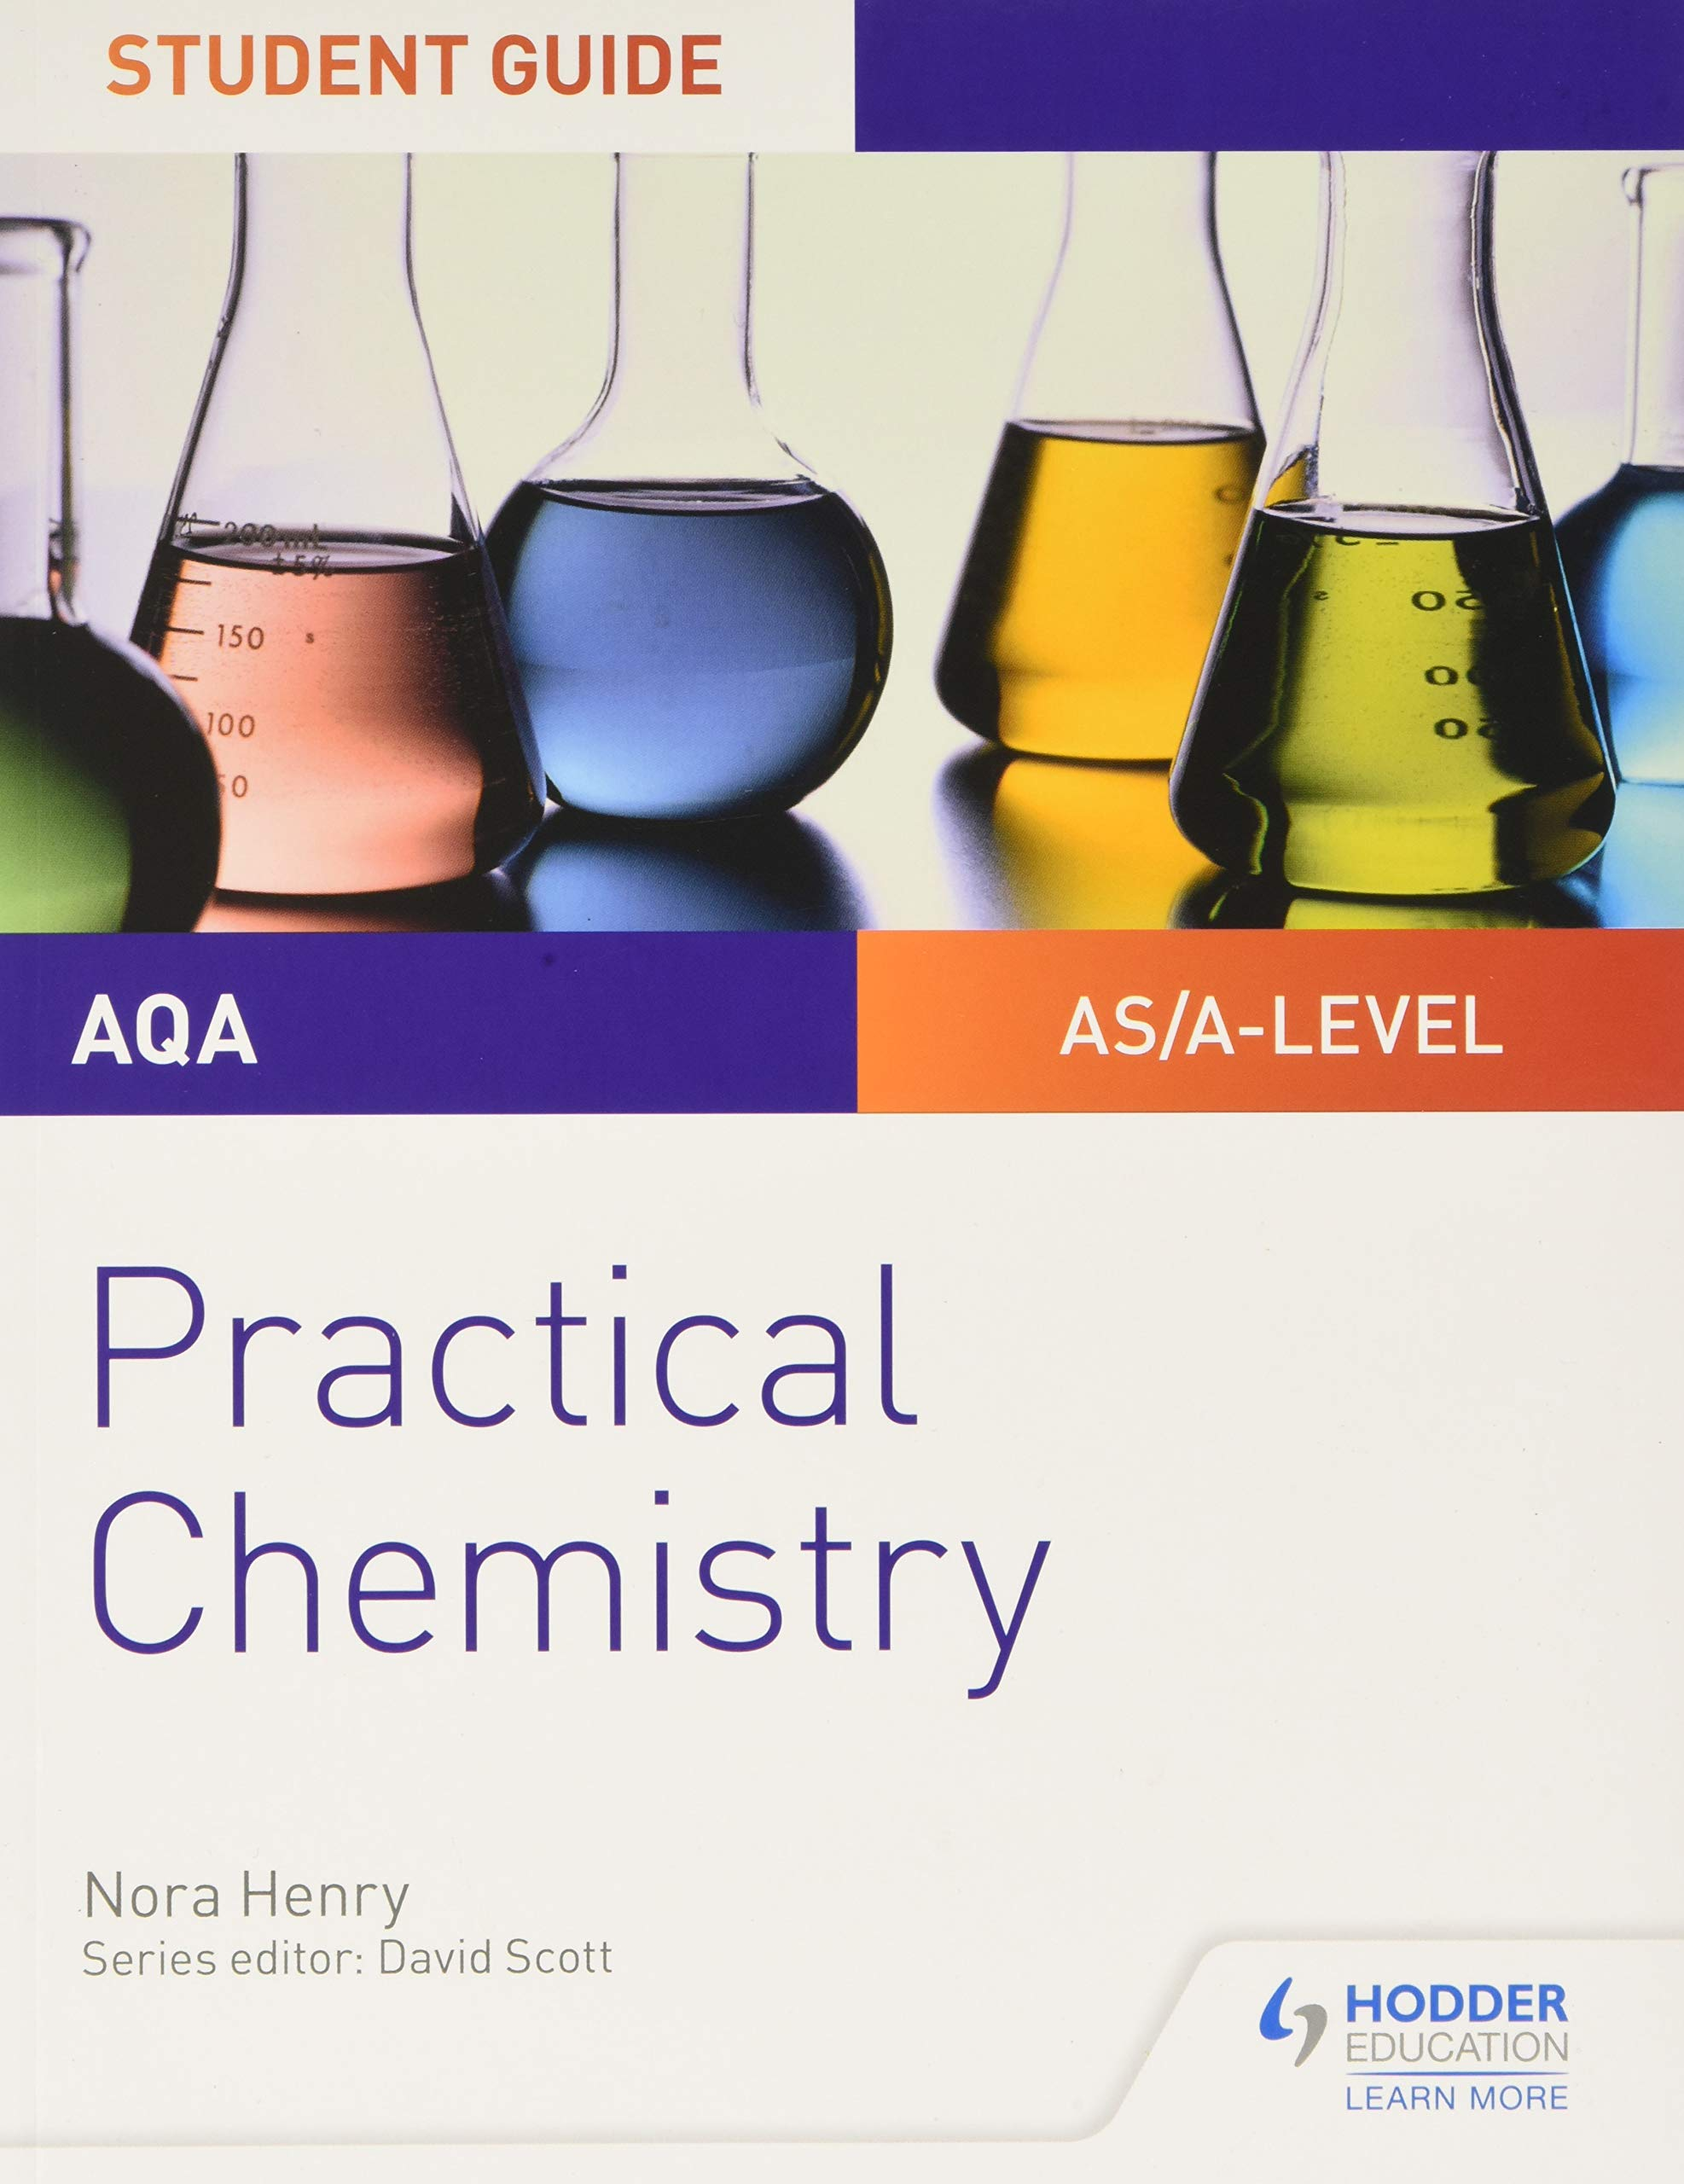 PRACTICAL CHEMISTRY (AQA AS/A-LEVEL CHEMISTRY STUDENT GUIDE)